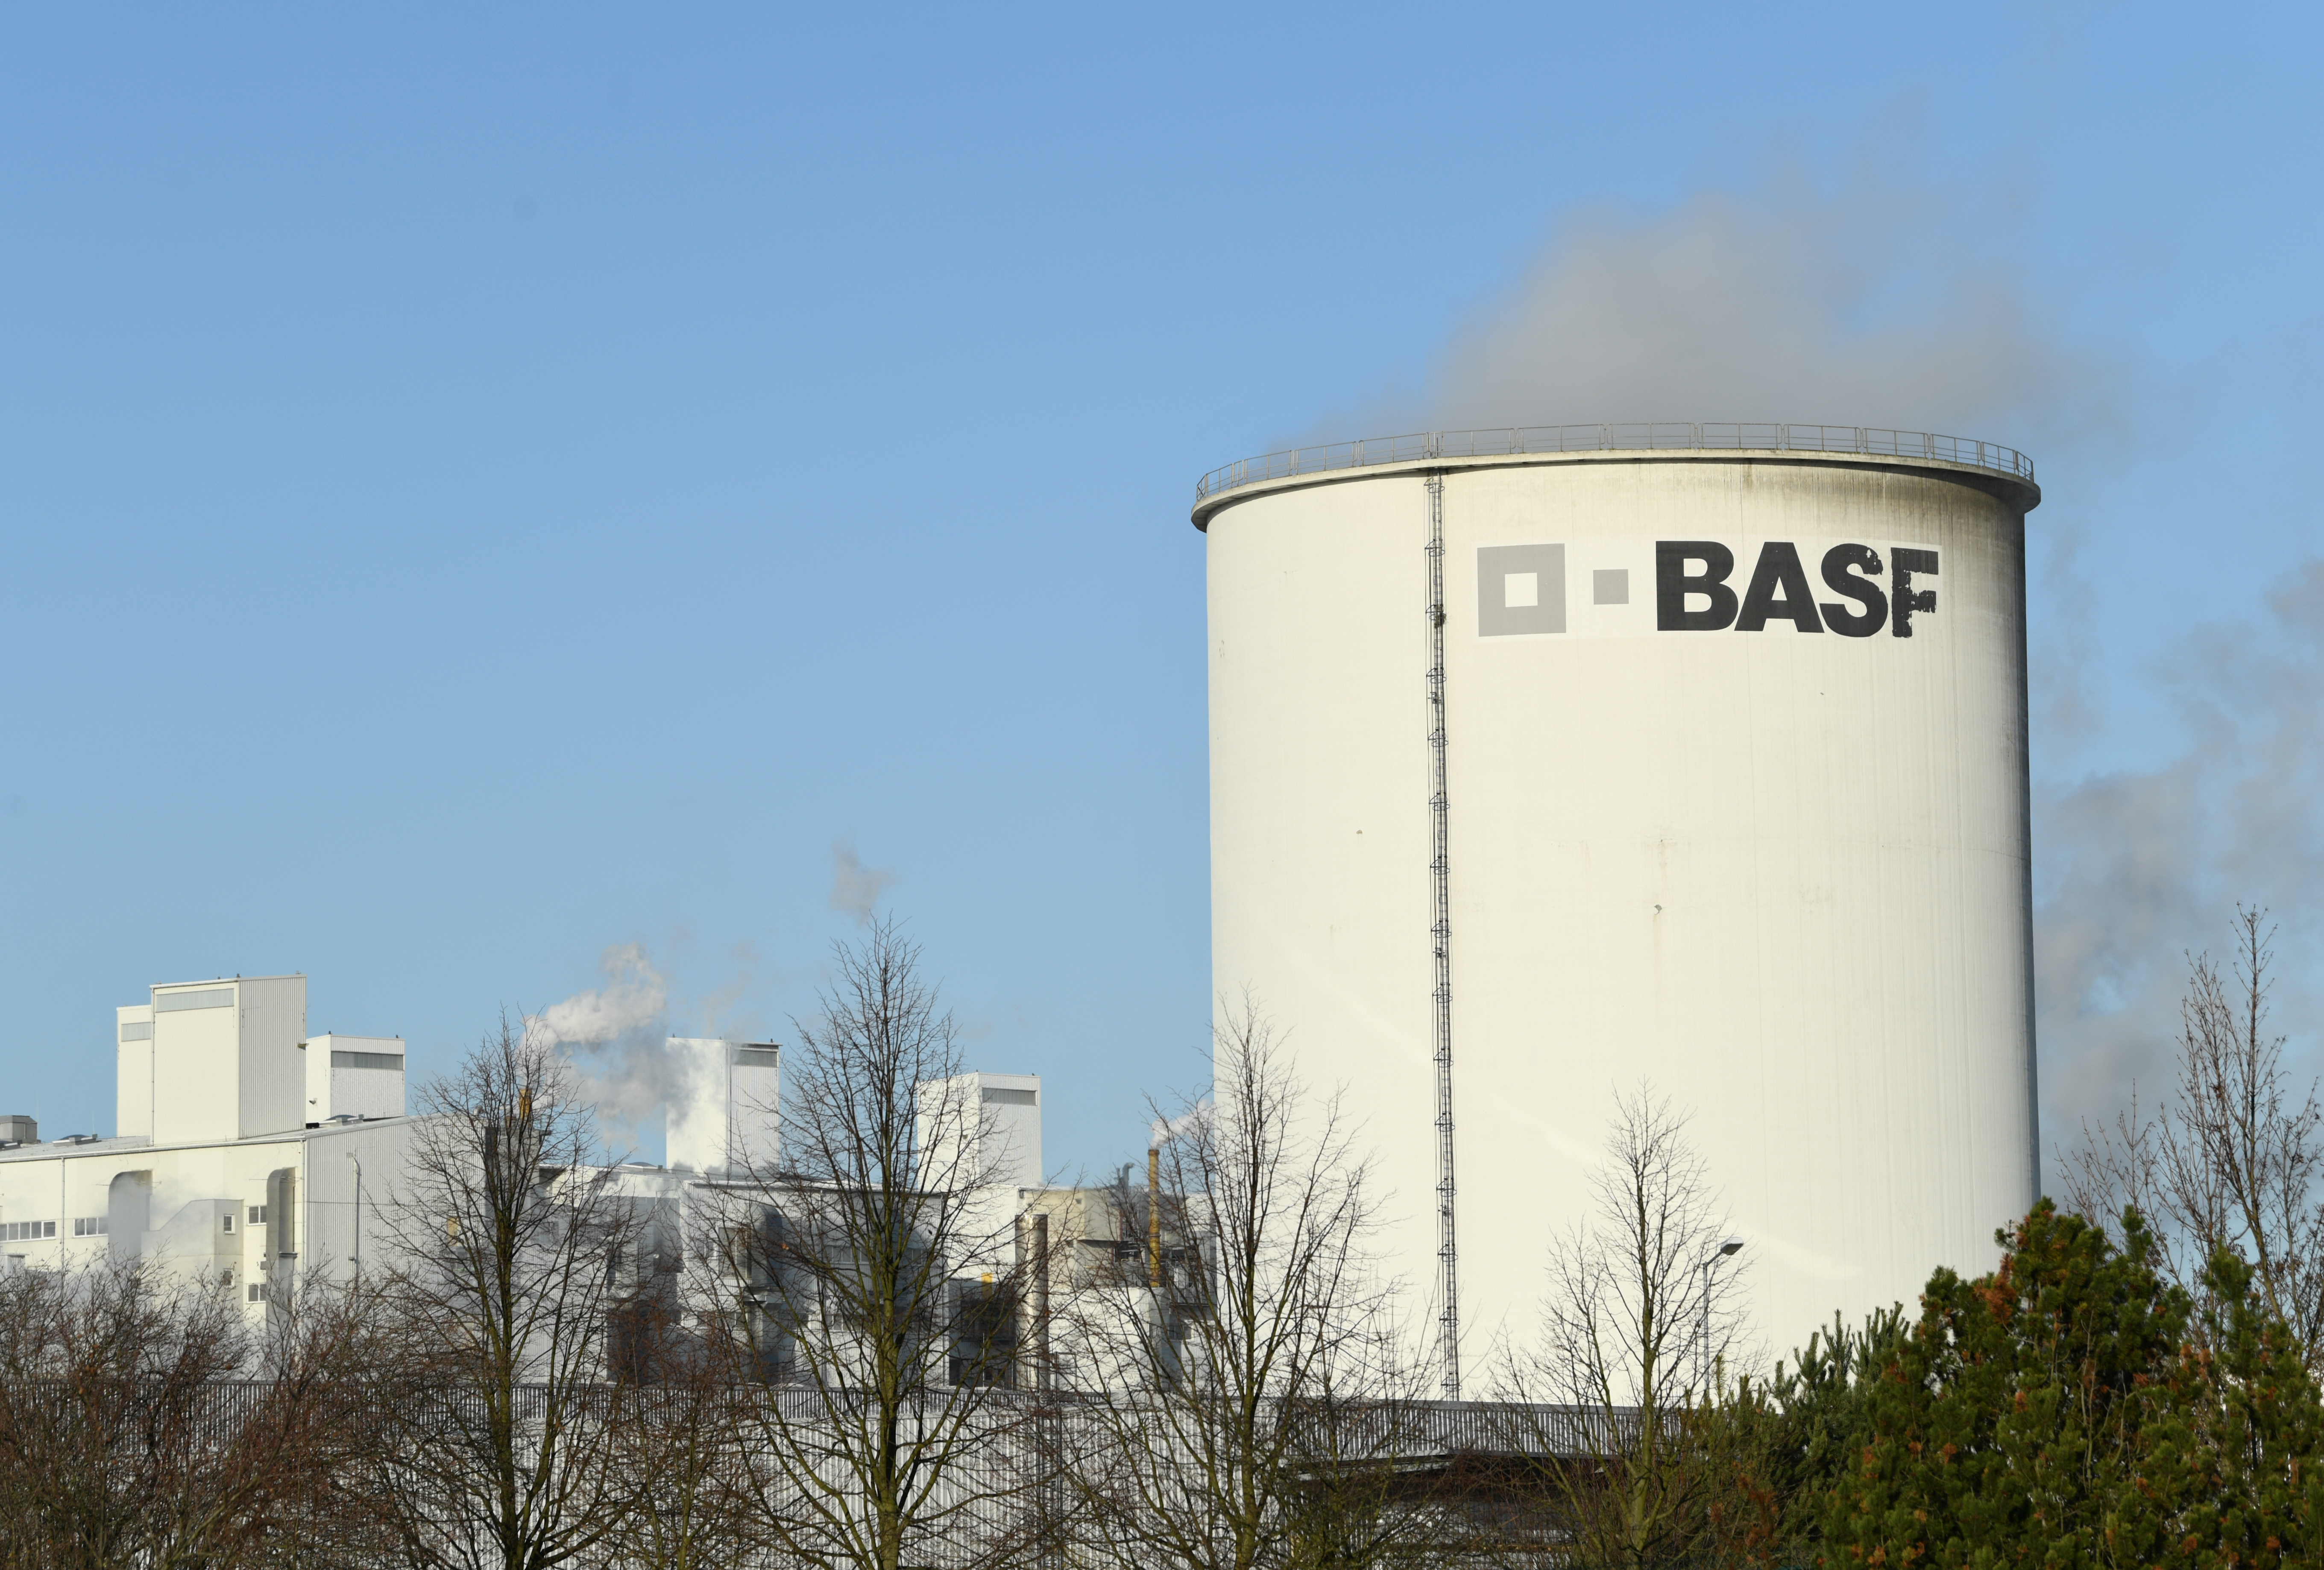 A general view of the German chemical company, BASF Schwarzheide GmbH in Schwarzheide, Germany, December 10, 2019. REUTERS/Annegret Hilse